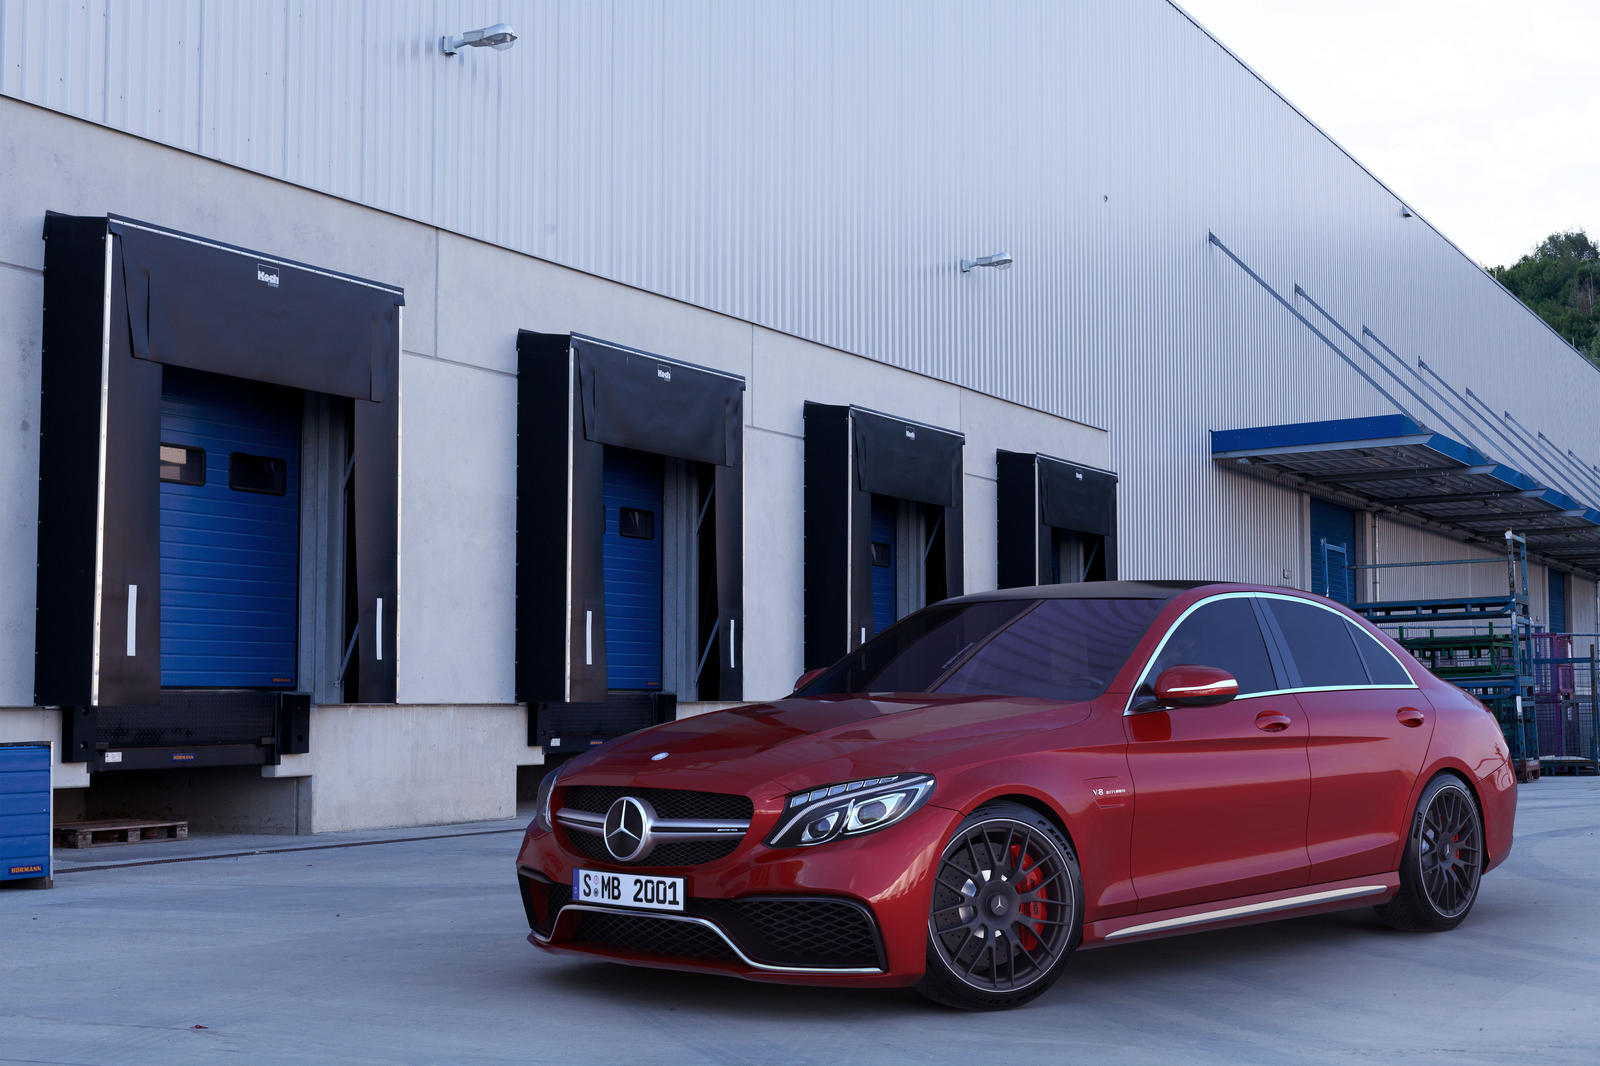 mercedes benz c63 amg 2015 red images galleries with a bite. Black Bedroom Furniture Sets. Home Design Ideas